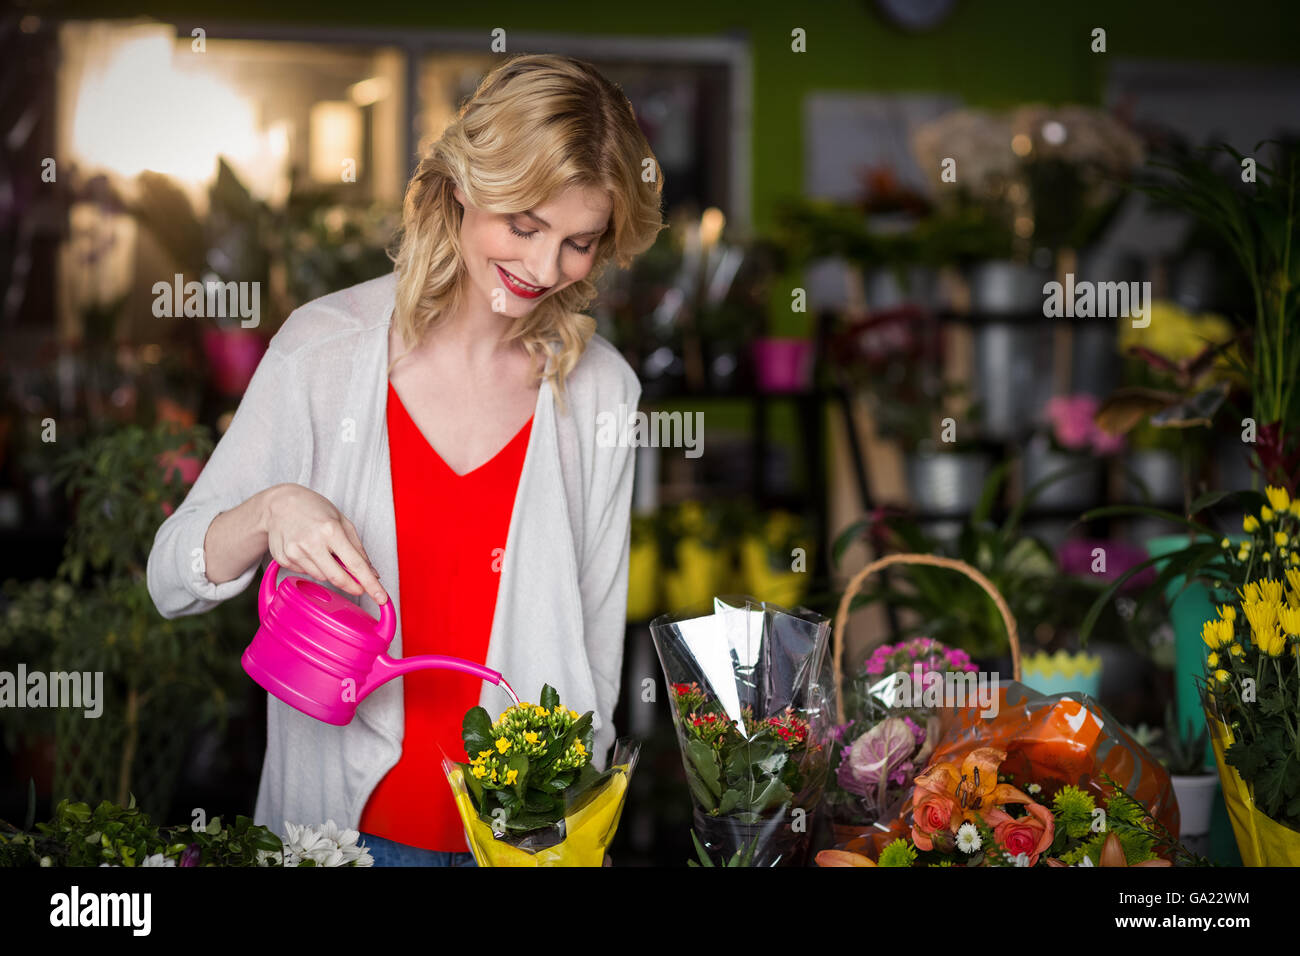 Female florist watering flowers - Stock Image